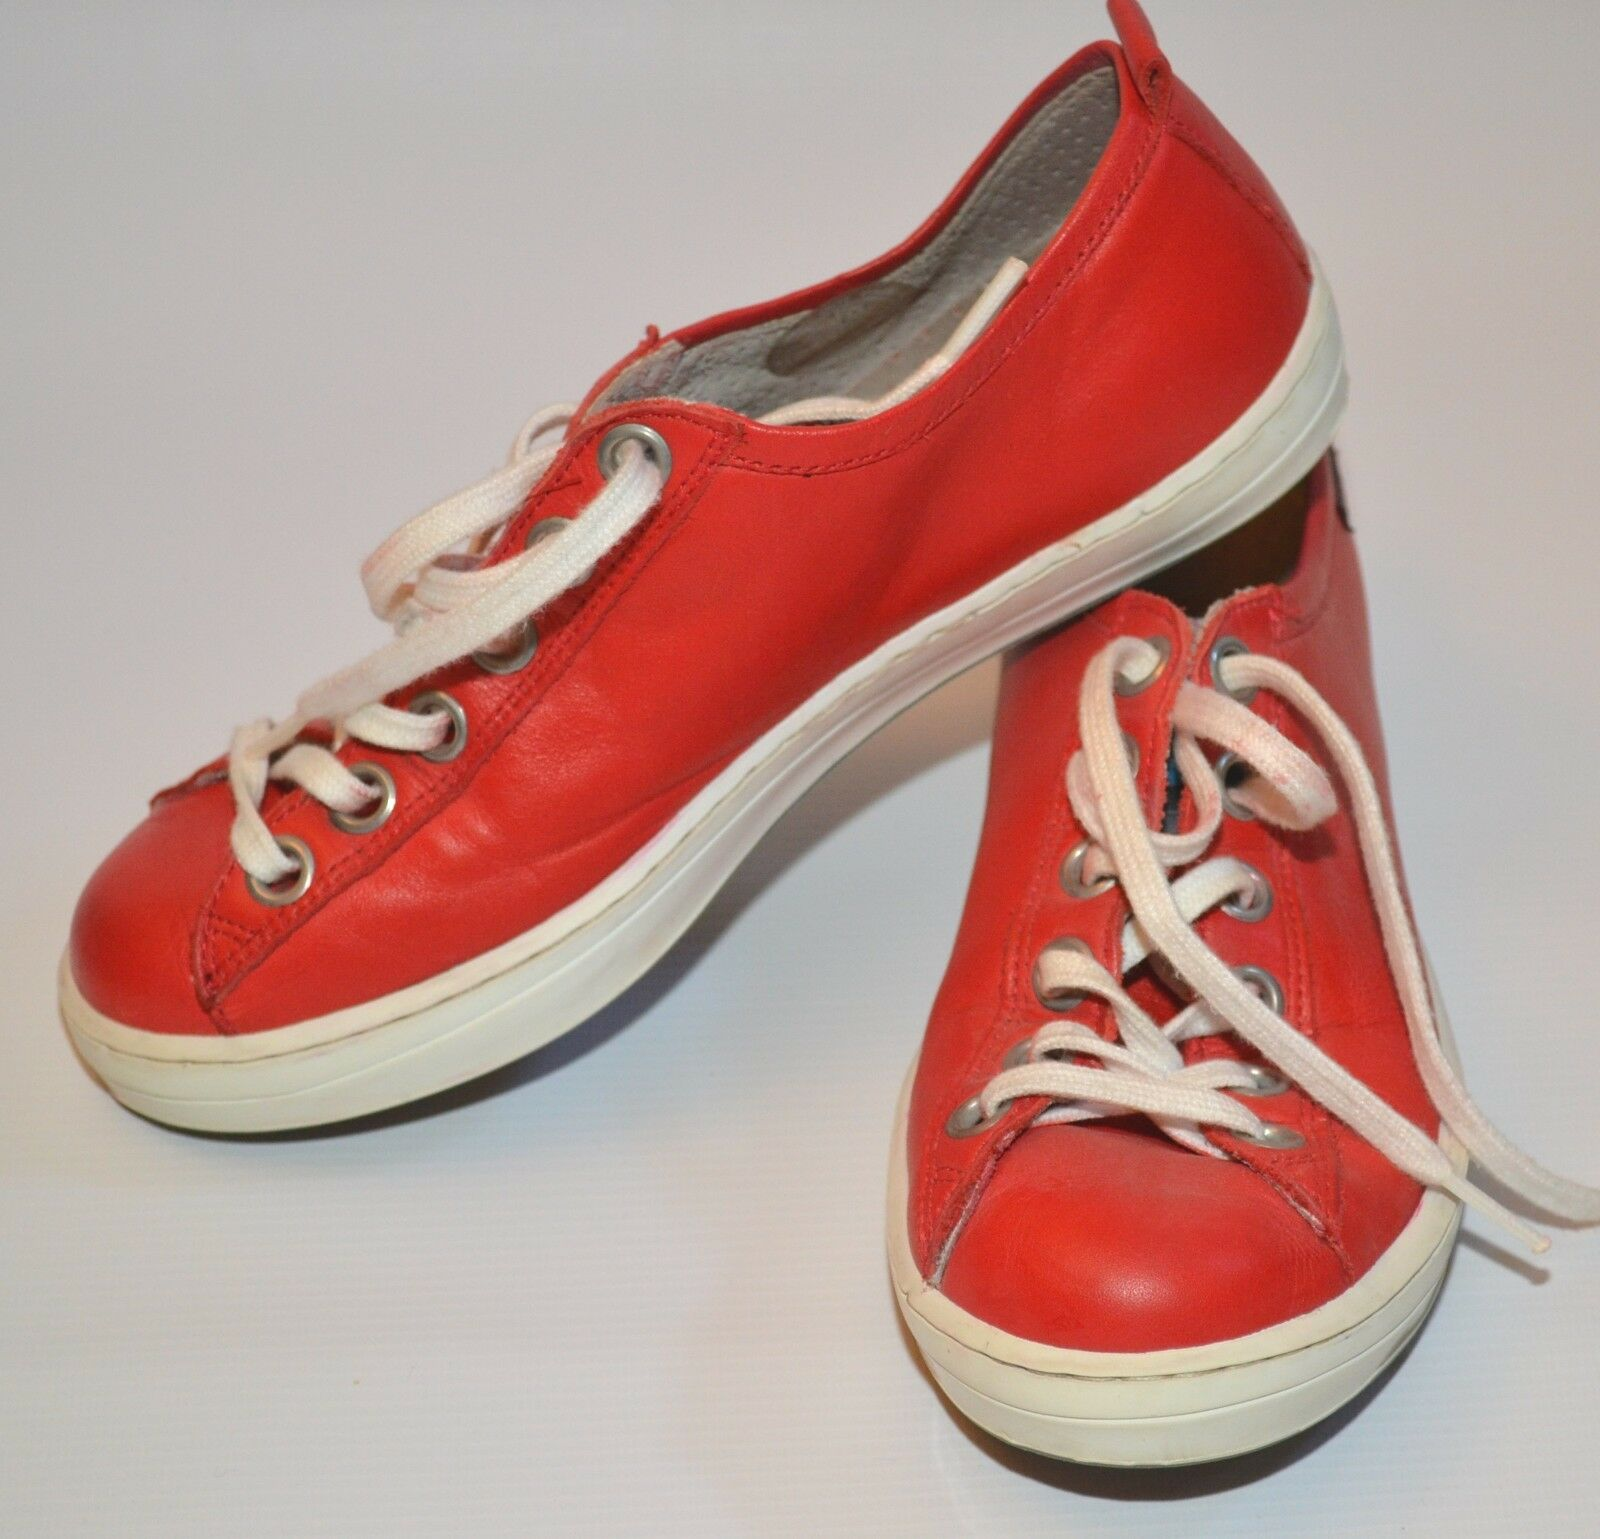 CAMPER LEATHER IMAR RED SNEAKERS TRAINERS SAILING SHOES EURO 35  USED